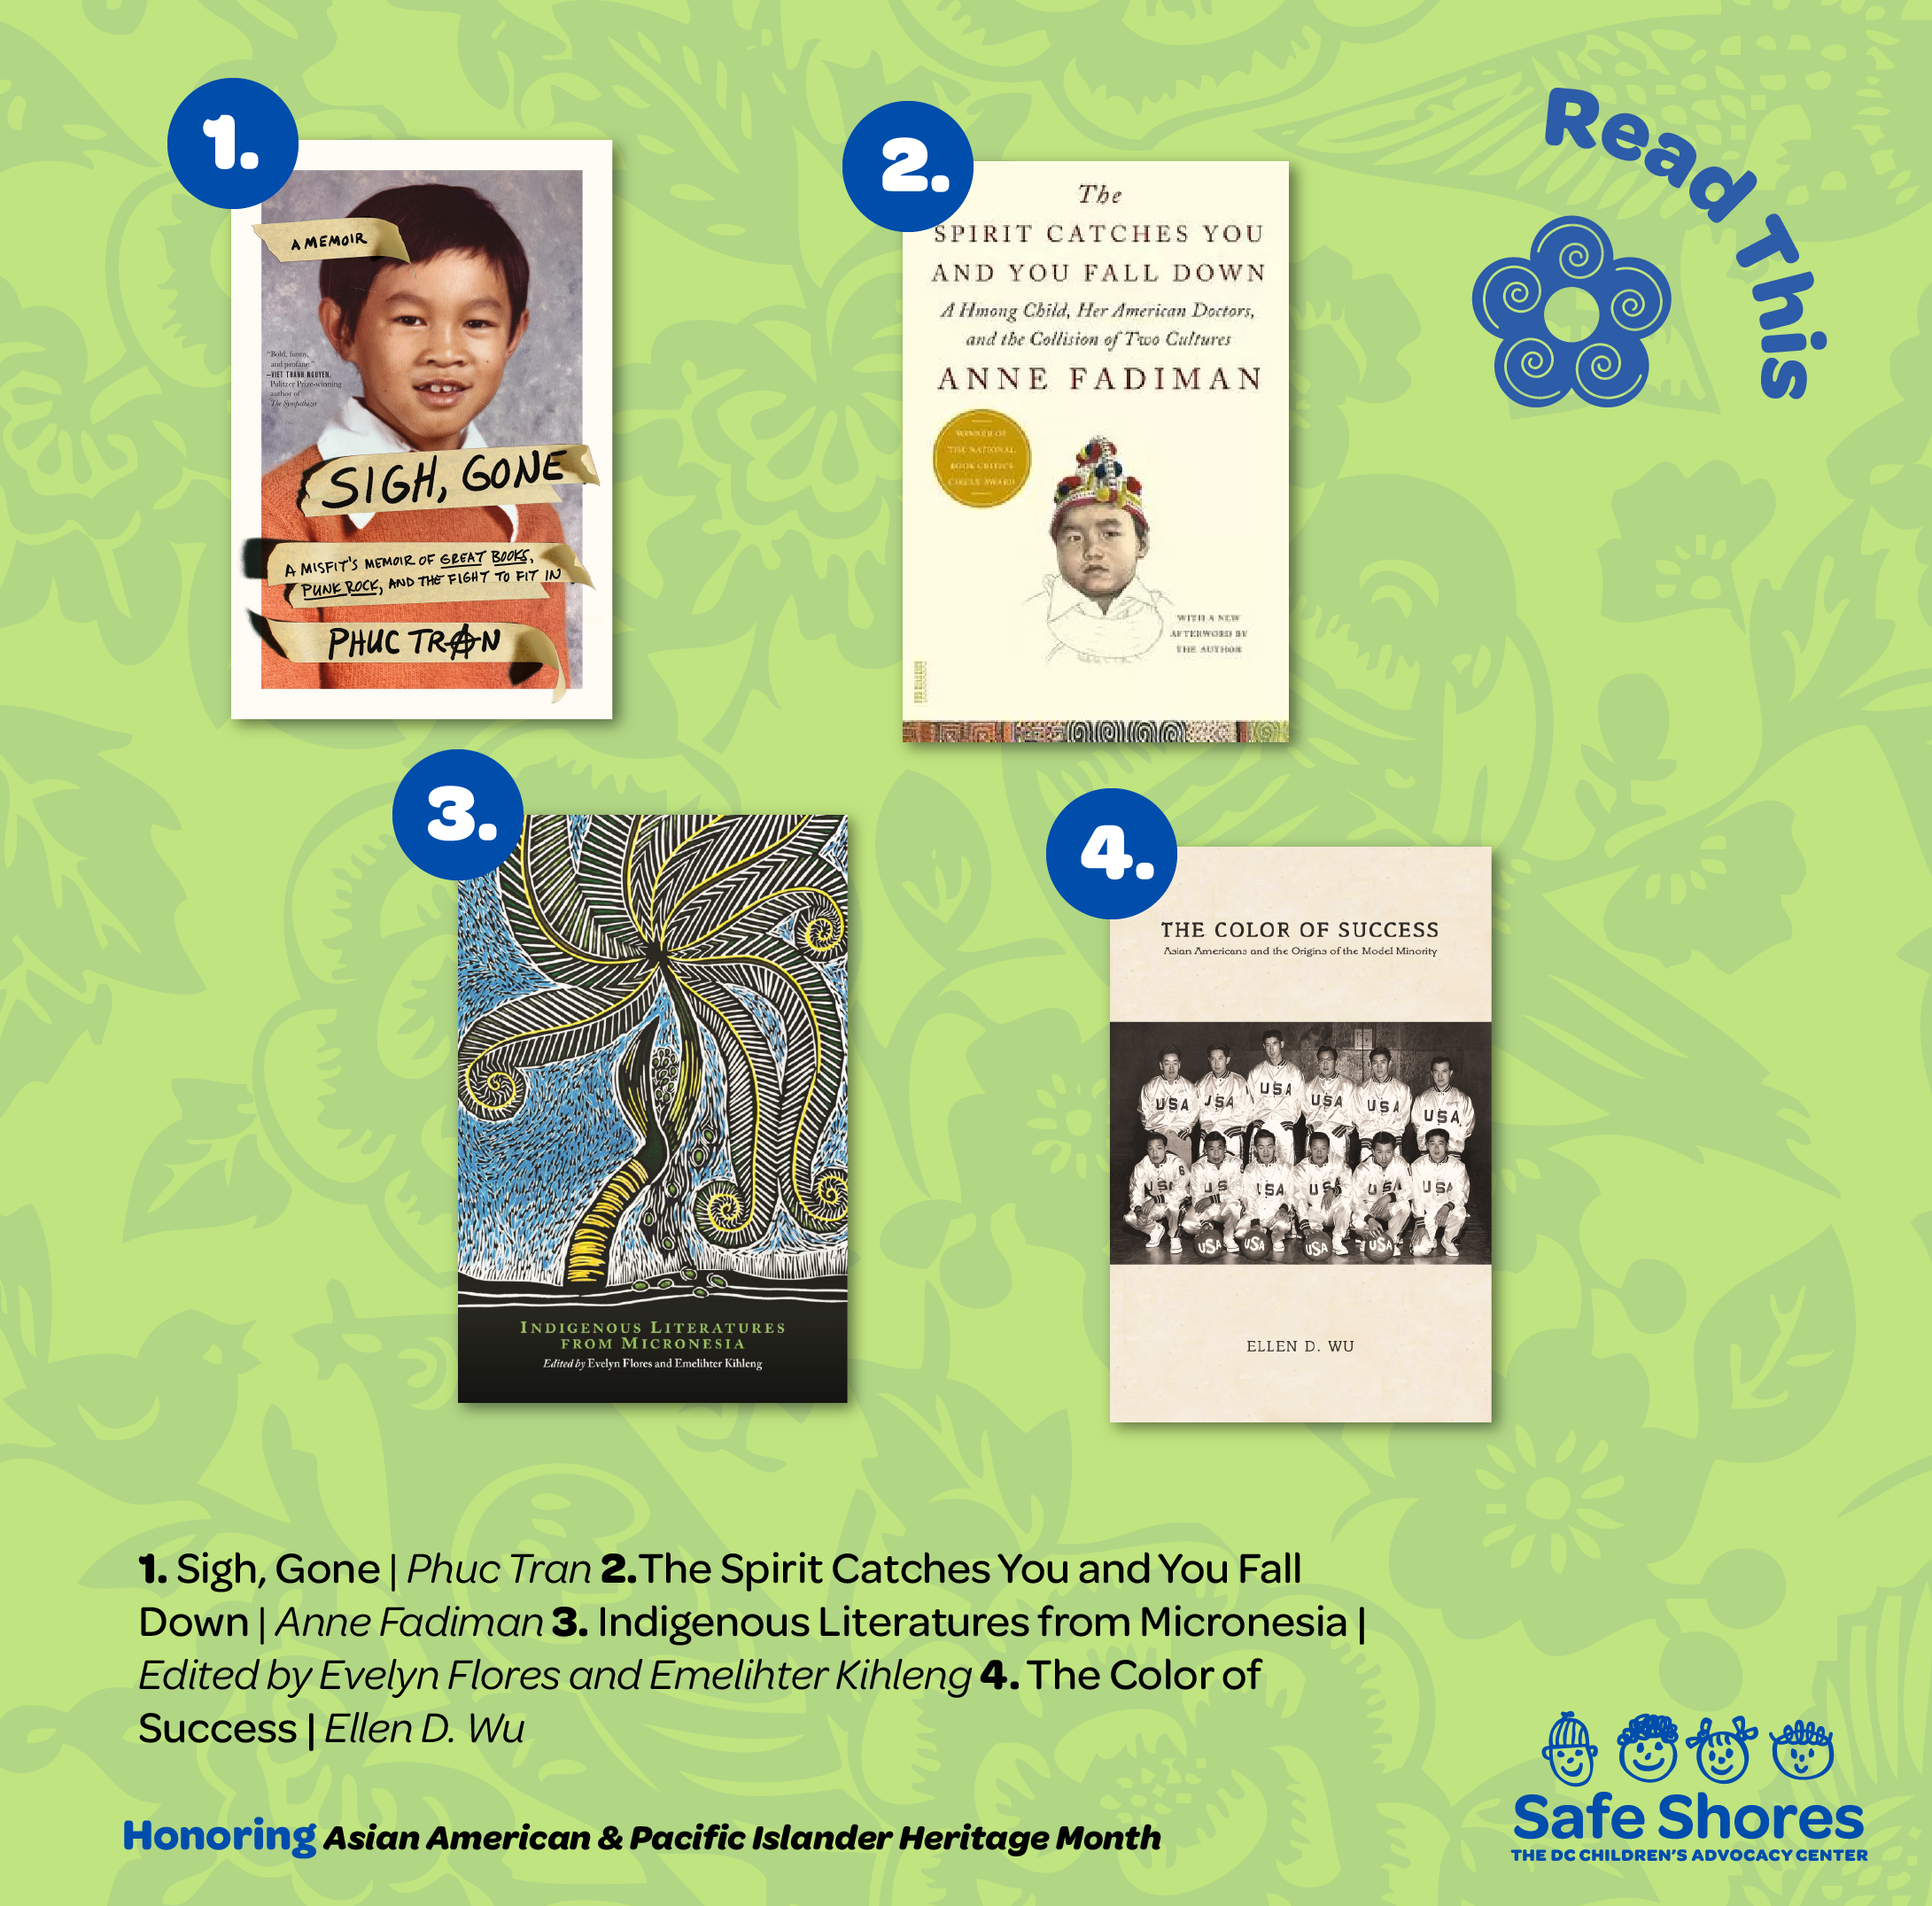 Books to read for Asian American and Pacific Islander Heritage. Books listed are: 1. Sigh, Gone by Phuc Tran 2. The Spirit Catches You and You Fall Down by Anne Fadiman 3.Indigenous Literasures from Micronesia edited by Evelyn Flores and Emeligter Kihleng 4. The Color of Success by Ellen D. Wu